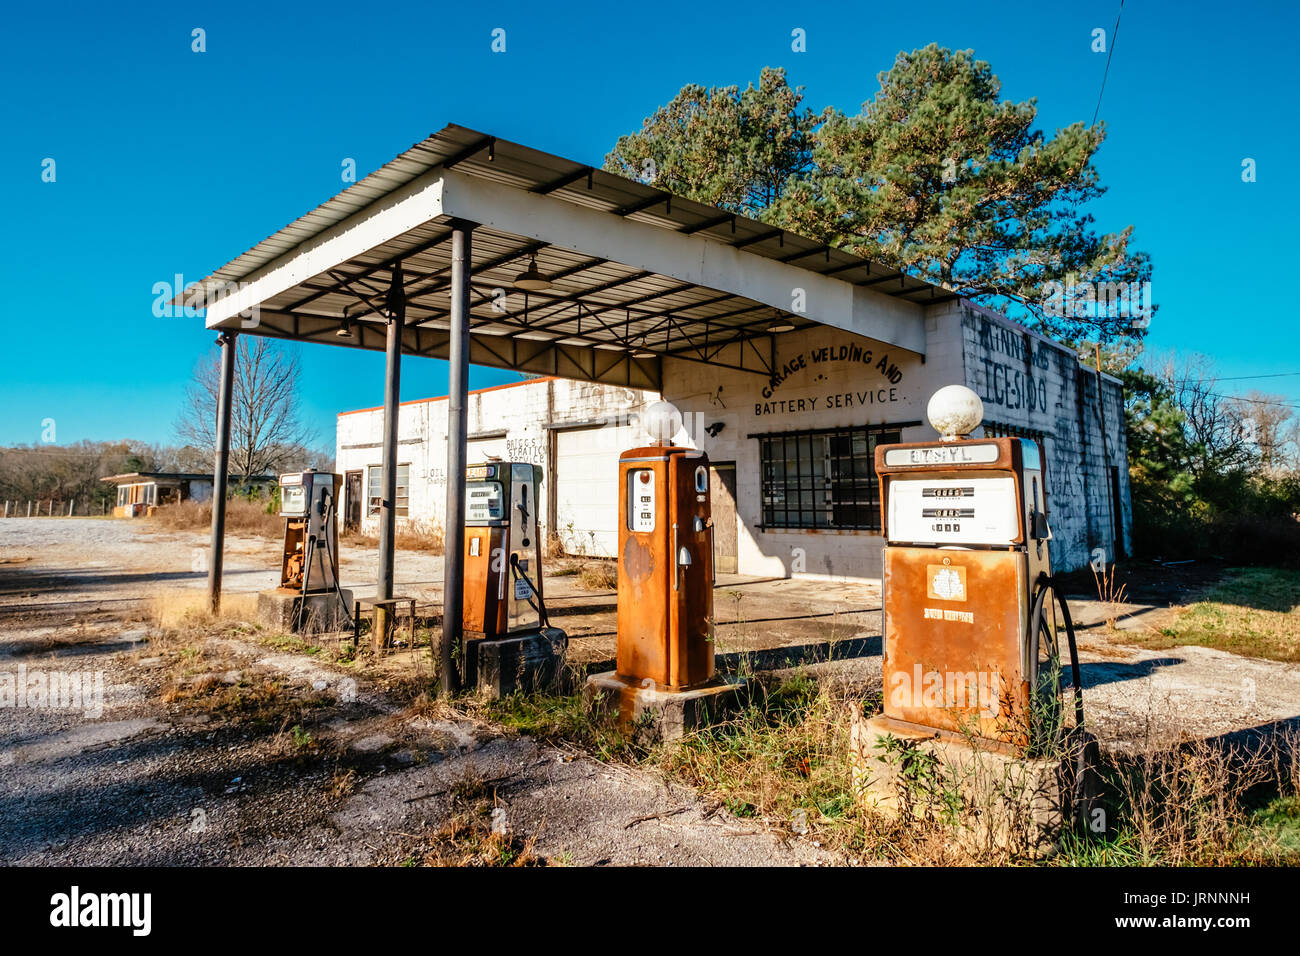 An Old Abandoned Gas Station Along A Country Road In Rural Alabama Stock Photo Alamy